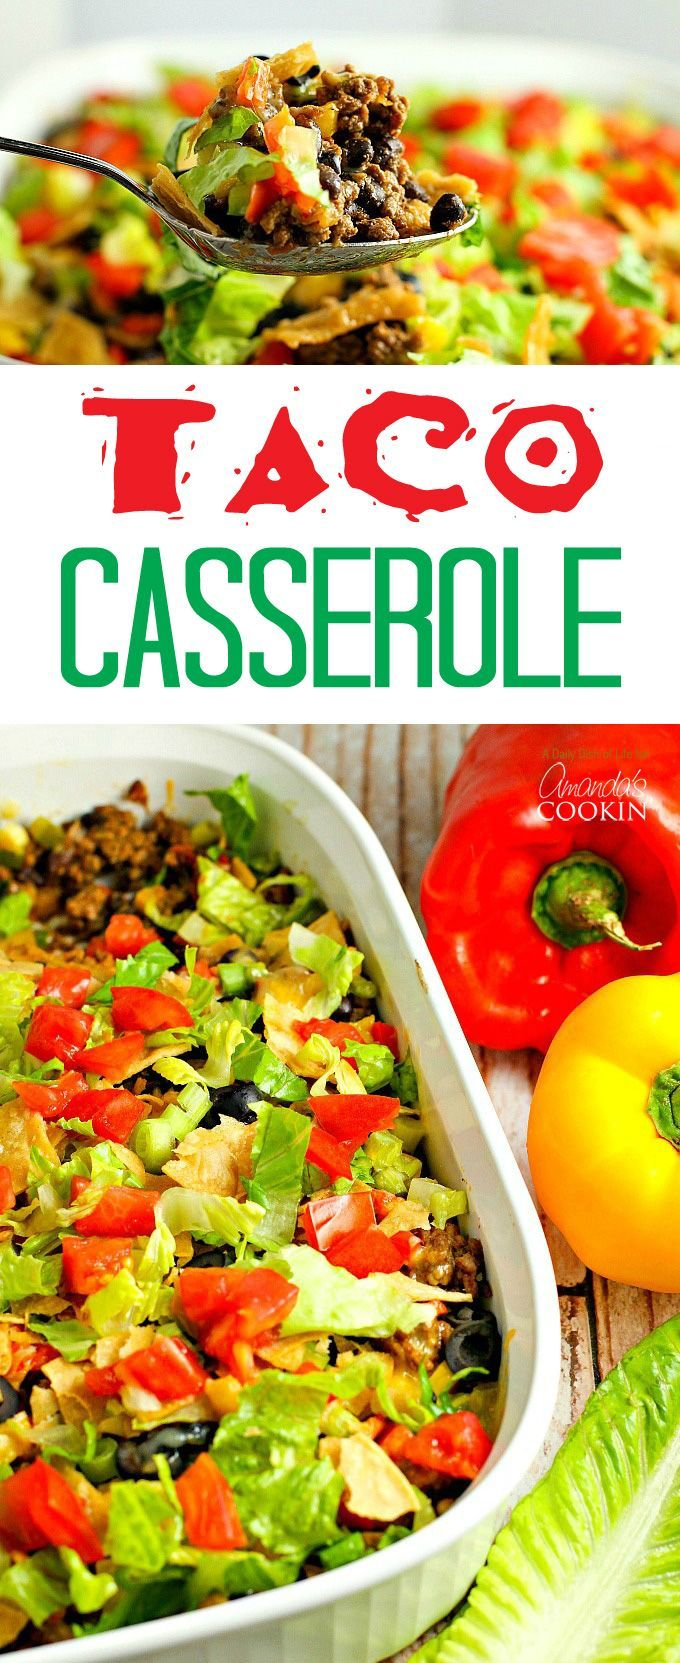 This delicious and hearty taco casserole will quickly become a family favorite…